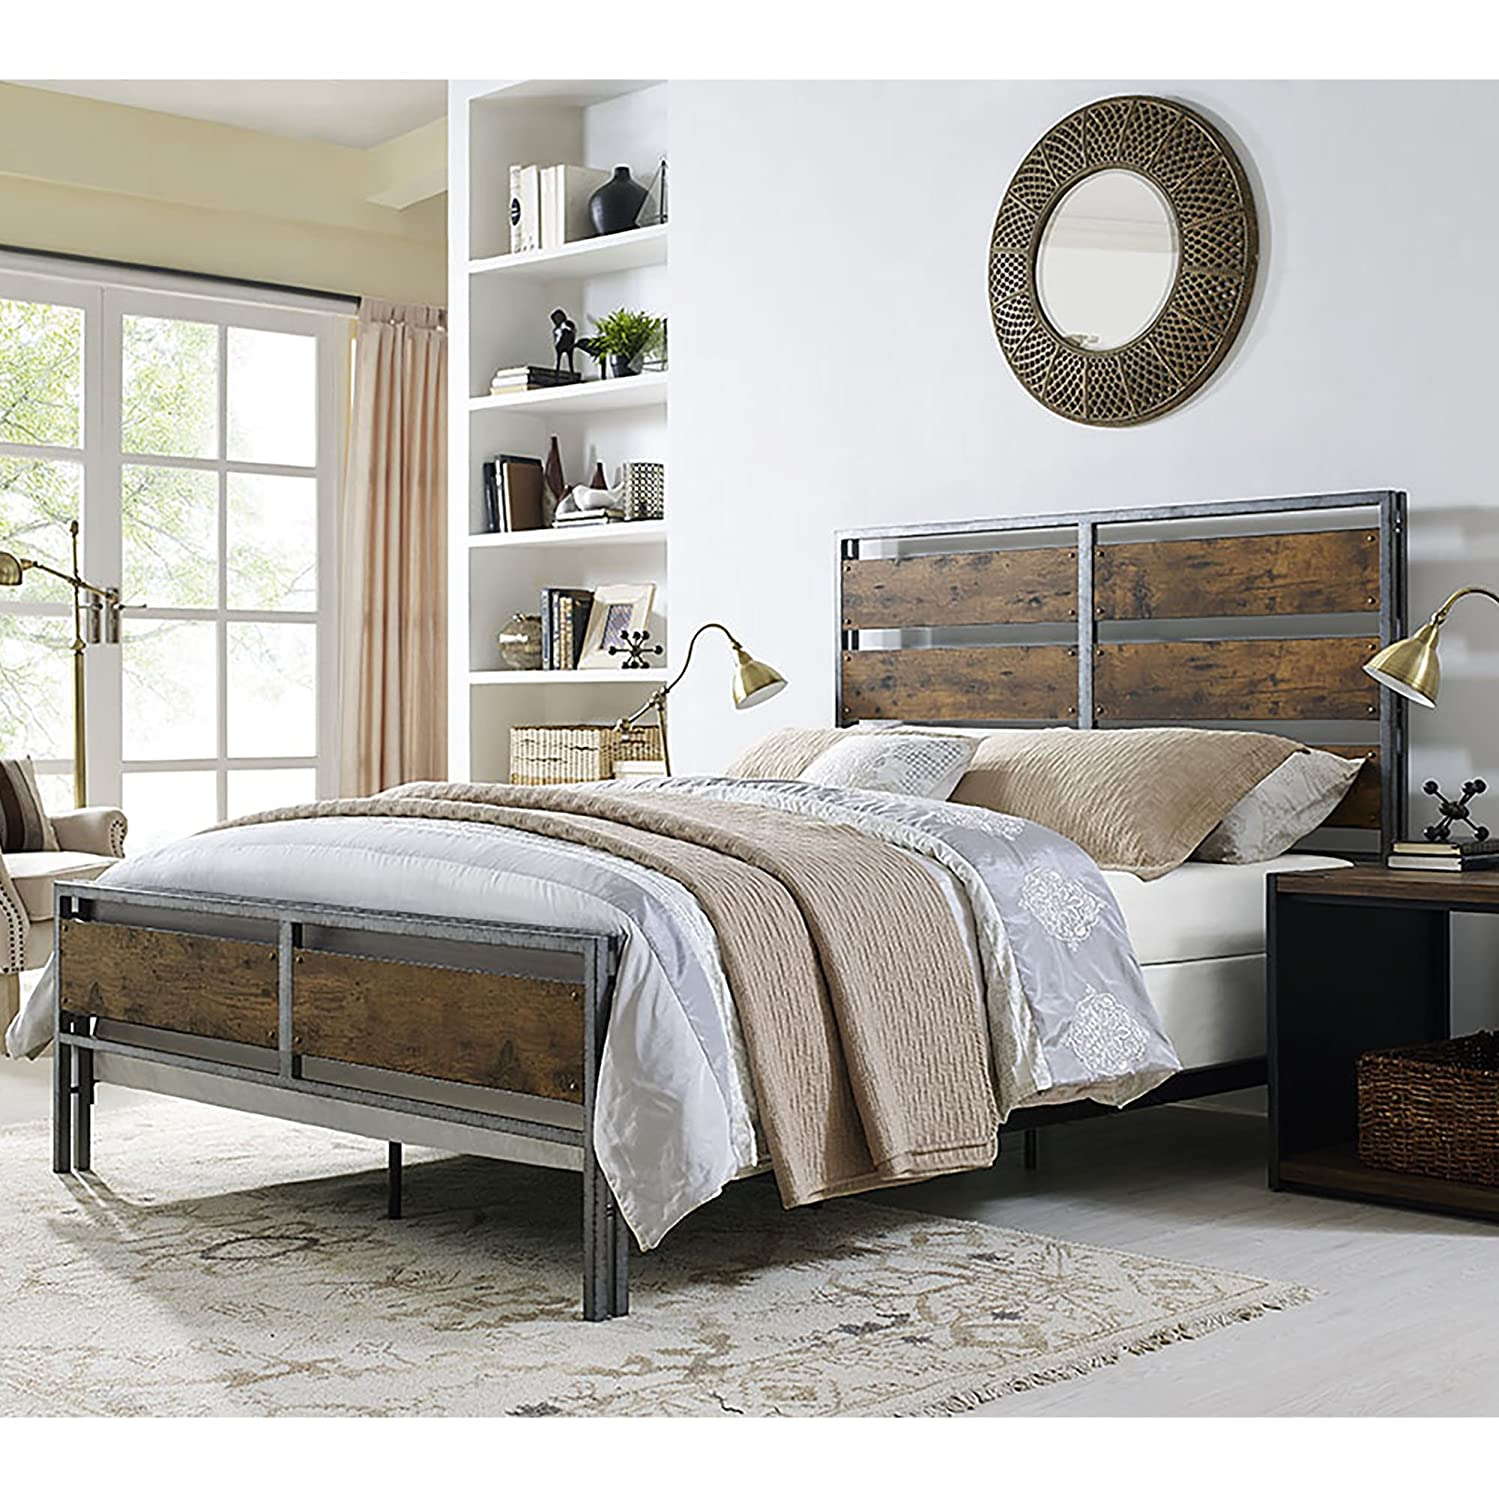 WE Furniture Queen Size Metal & Wood Plank Bed - Brown